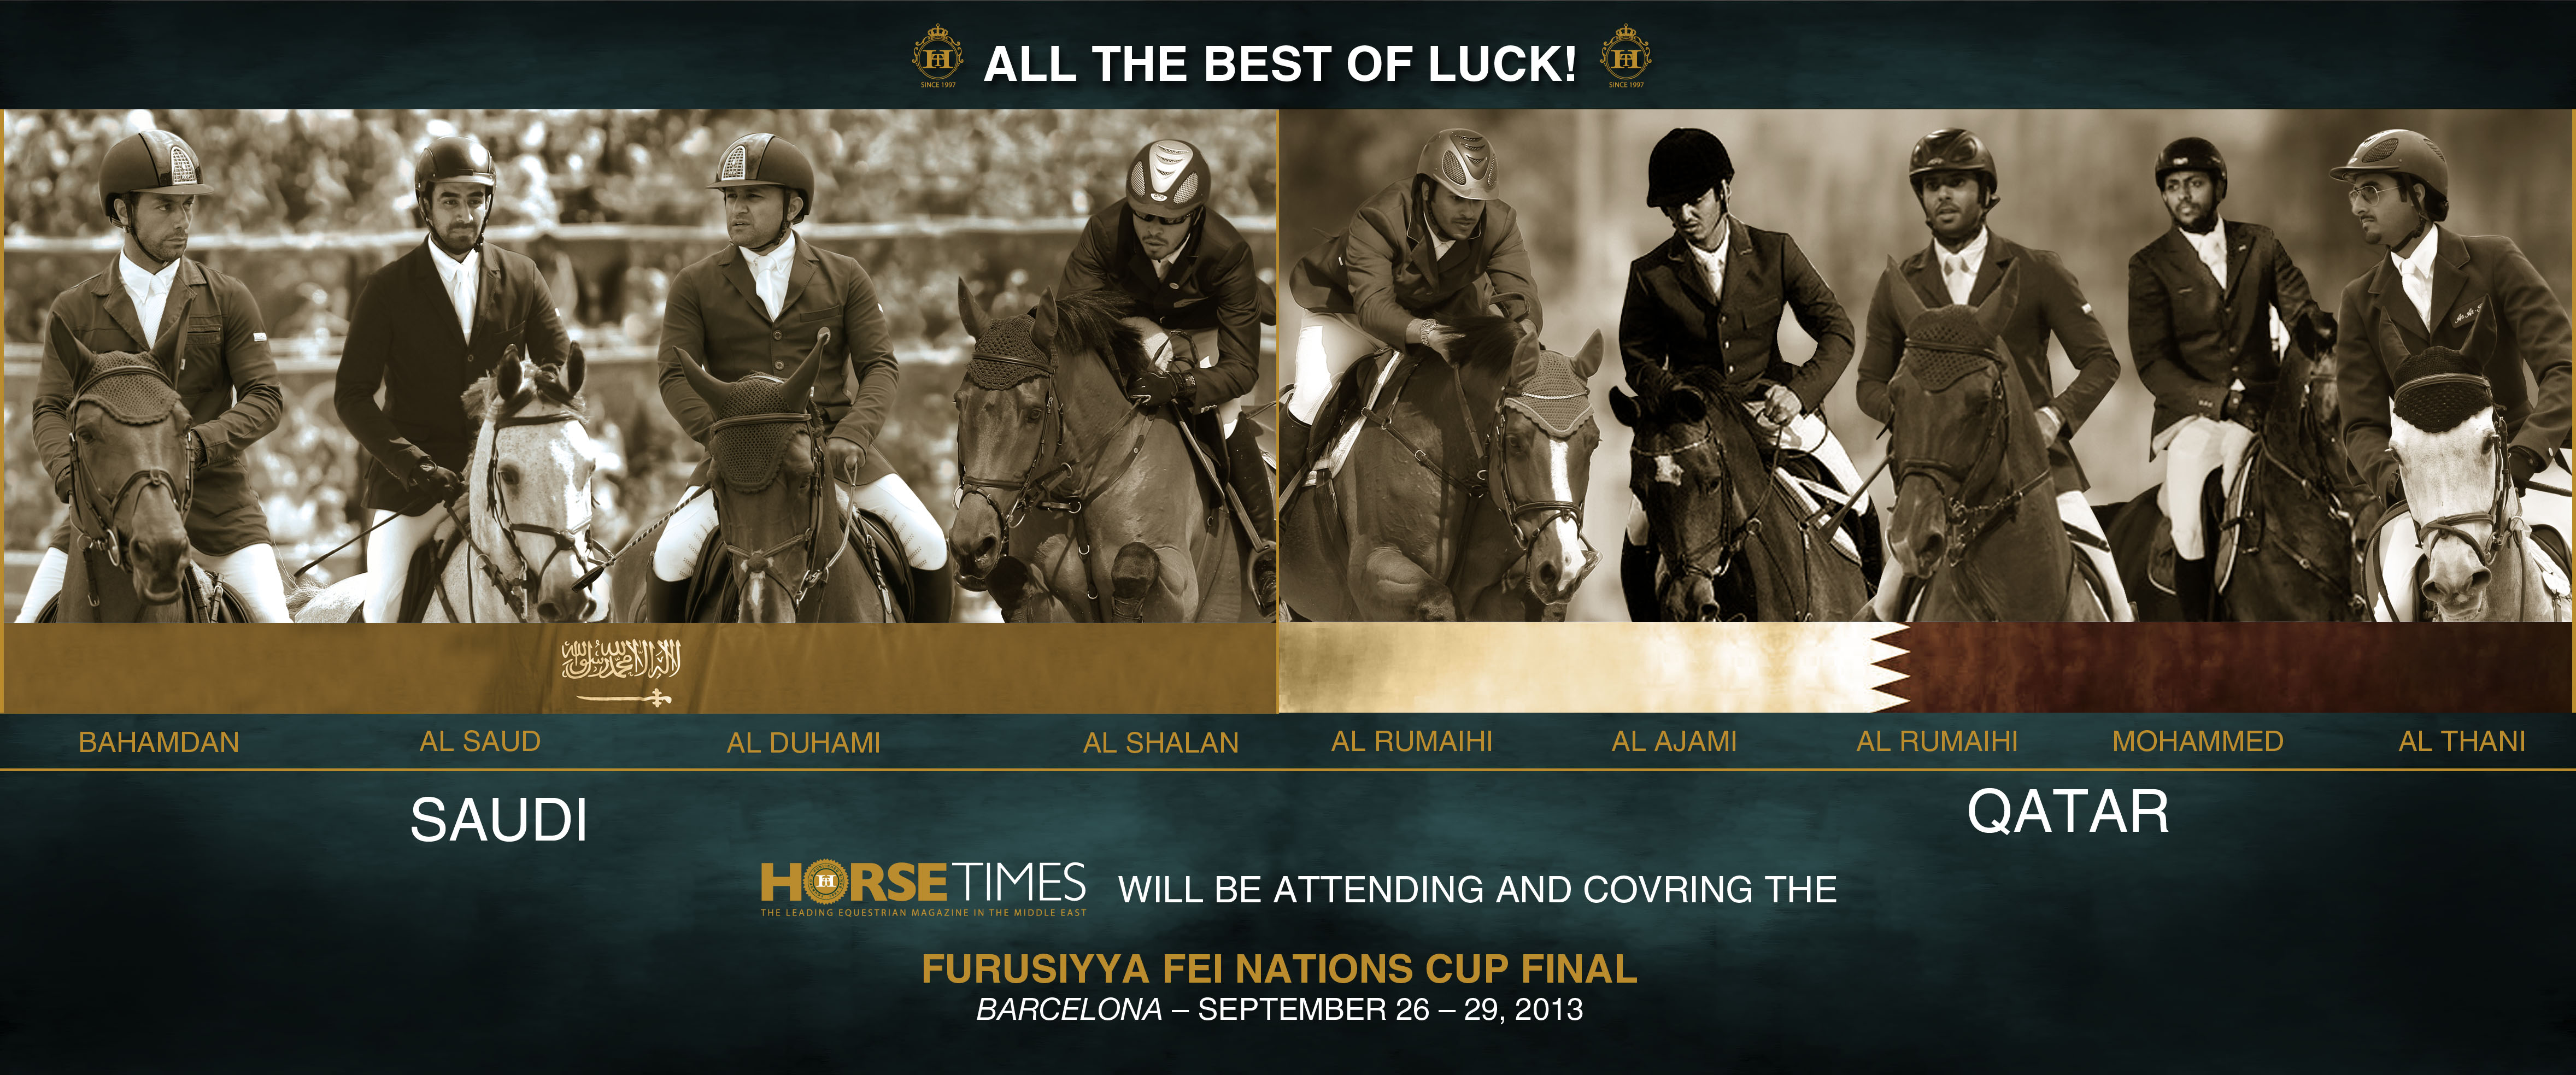 Horse Times Egypt: Equestrian Magazine :News :THE STAGE IS SET AND EXCITEMENT IS MOUNTING AHEAD OF FABULOUS FURUSIYYA FINAL